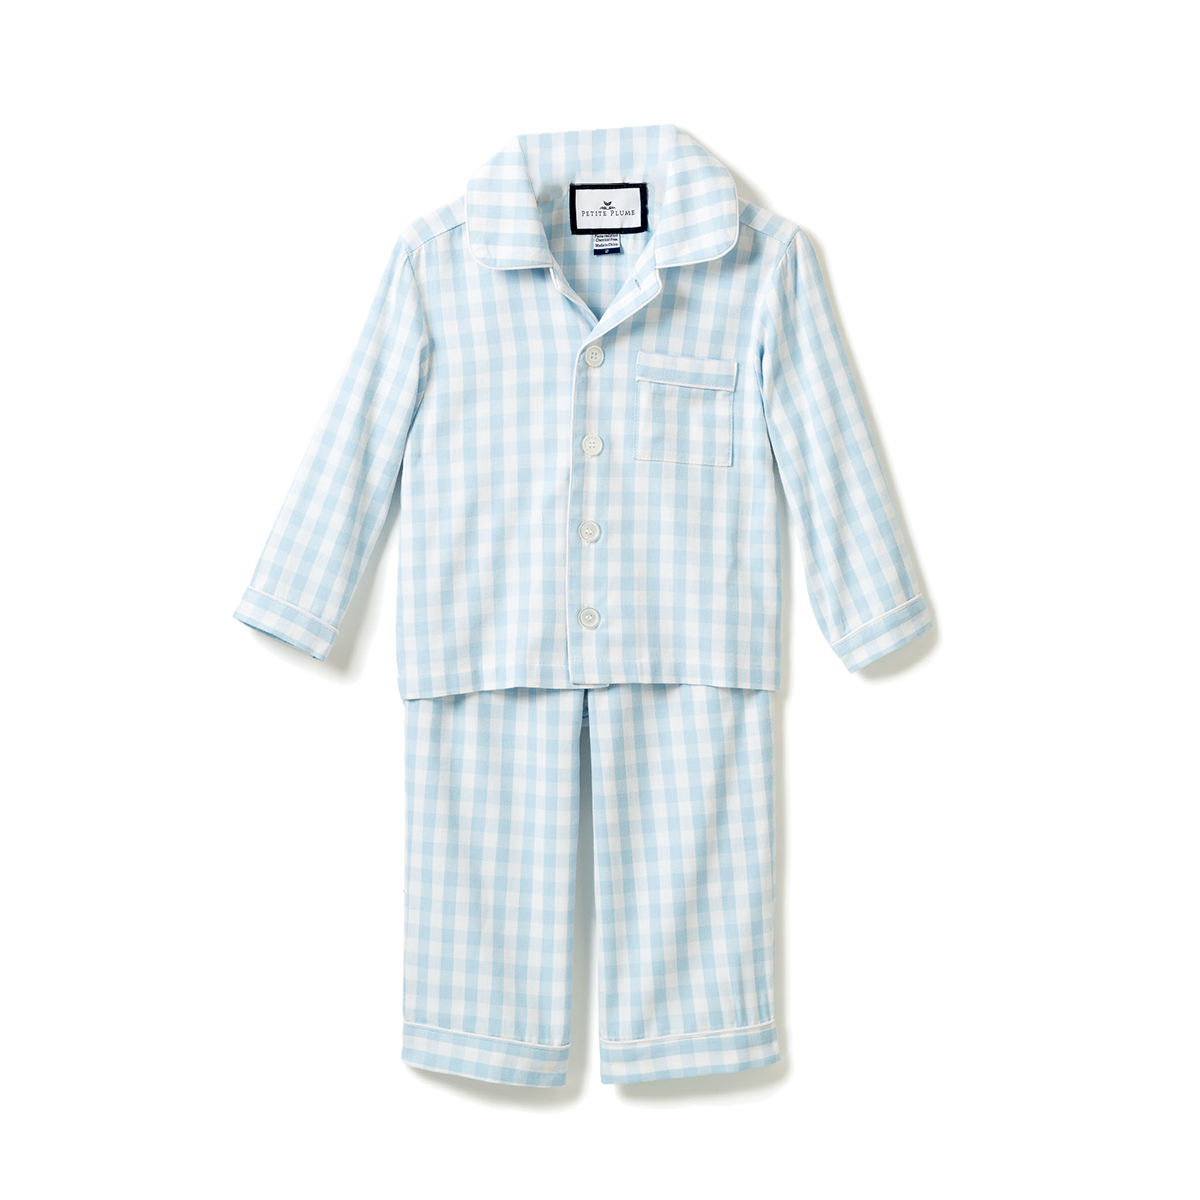 Petite Plume Light Blue Gingham Pajama Set- Kids